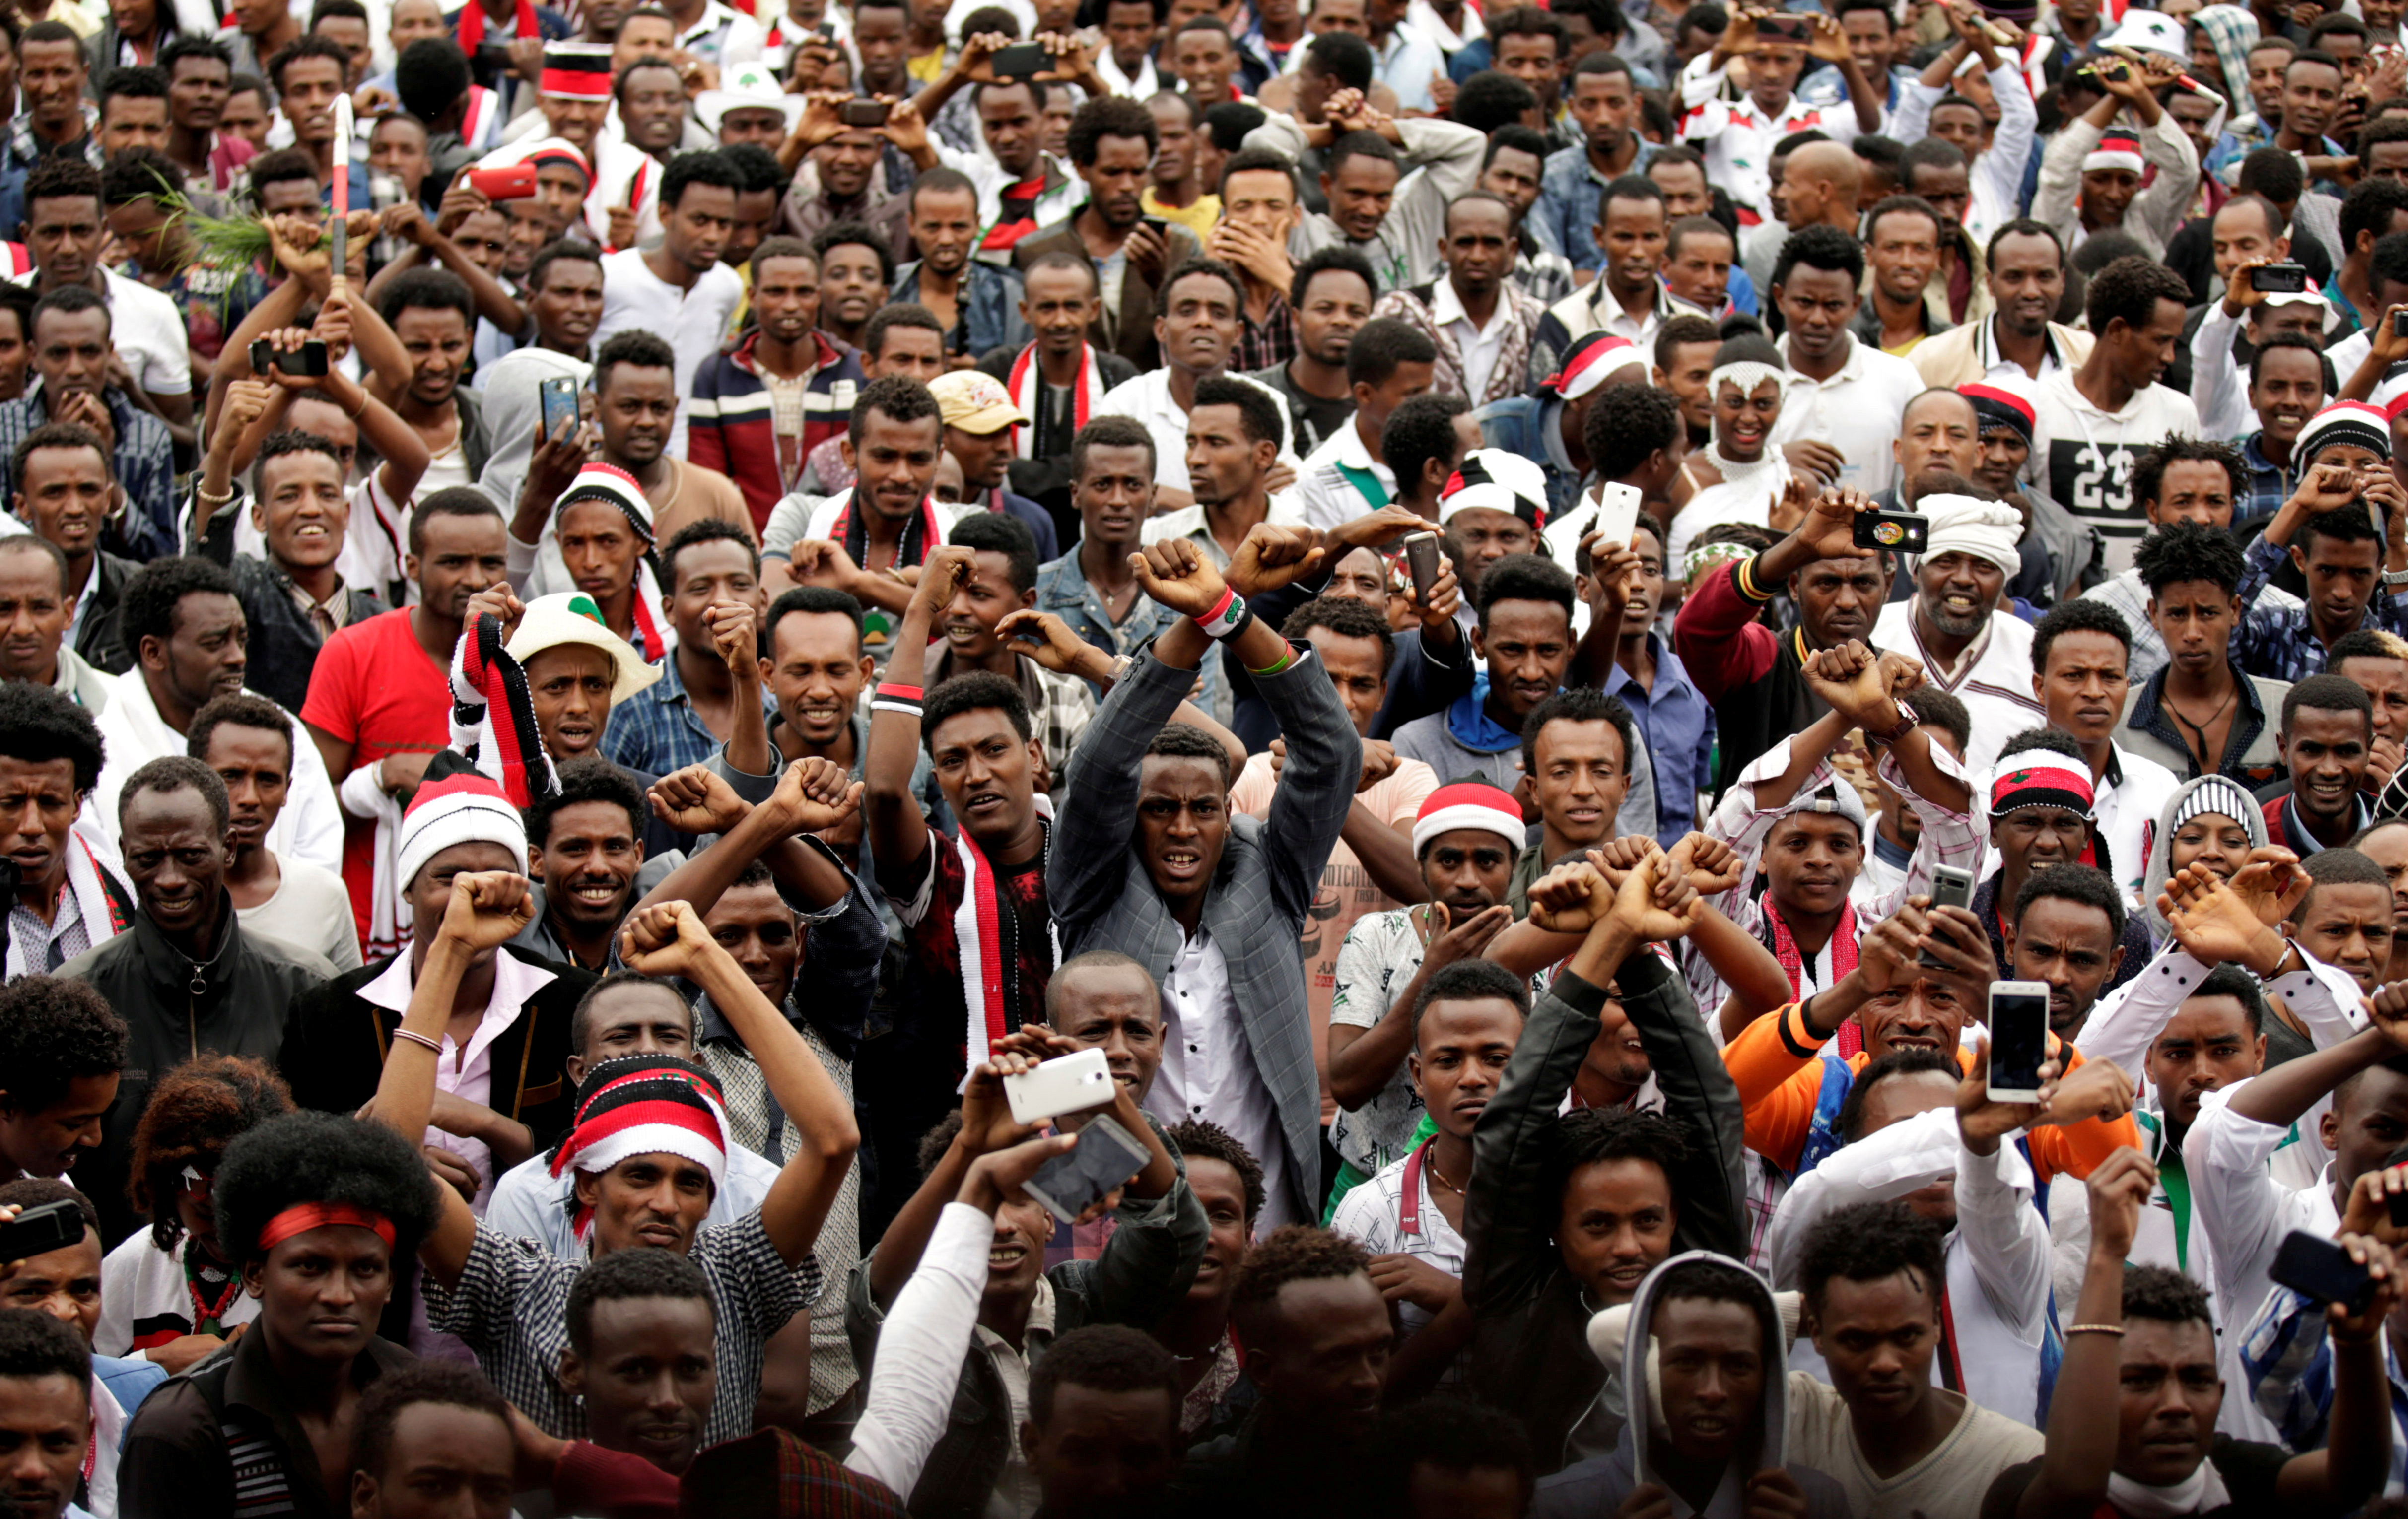 Demonstrators chant slogans while flashing the Oromo protest gesture during celebrations for Irreecha, the thanksgiving festival of the Oromo people, in Bishoftu town, Oromia region, Ethiopia, October 1, 2017.